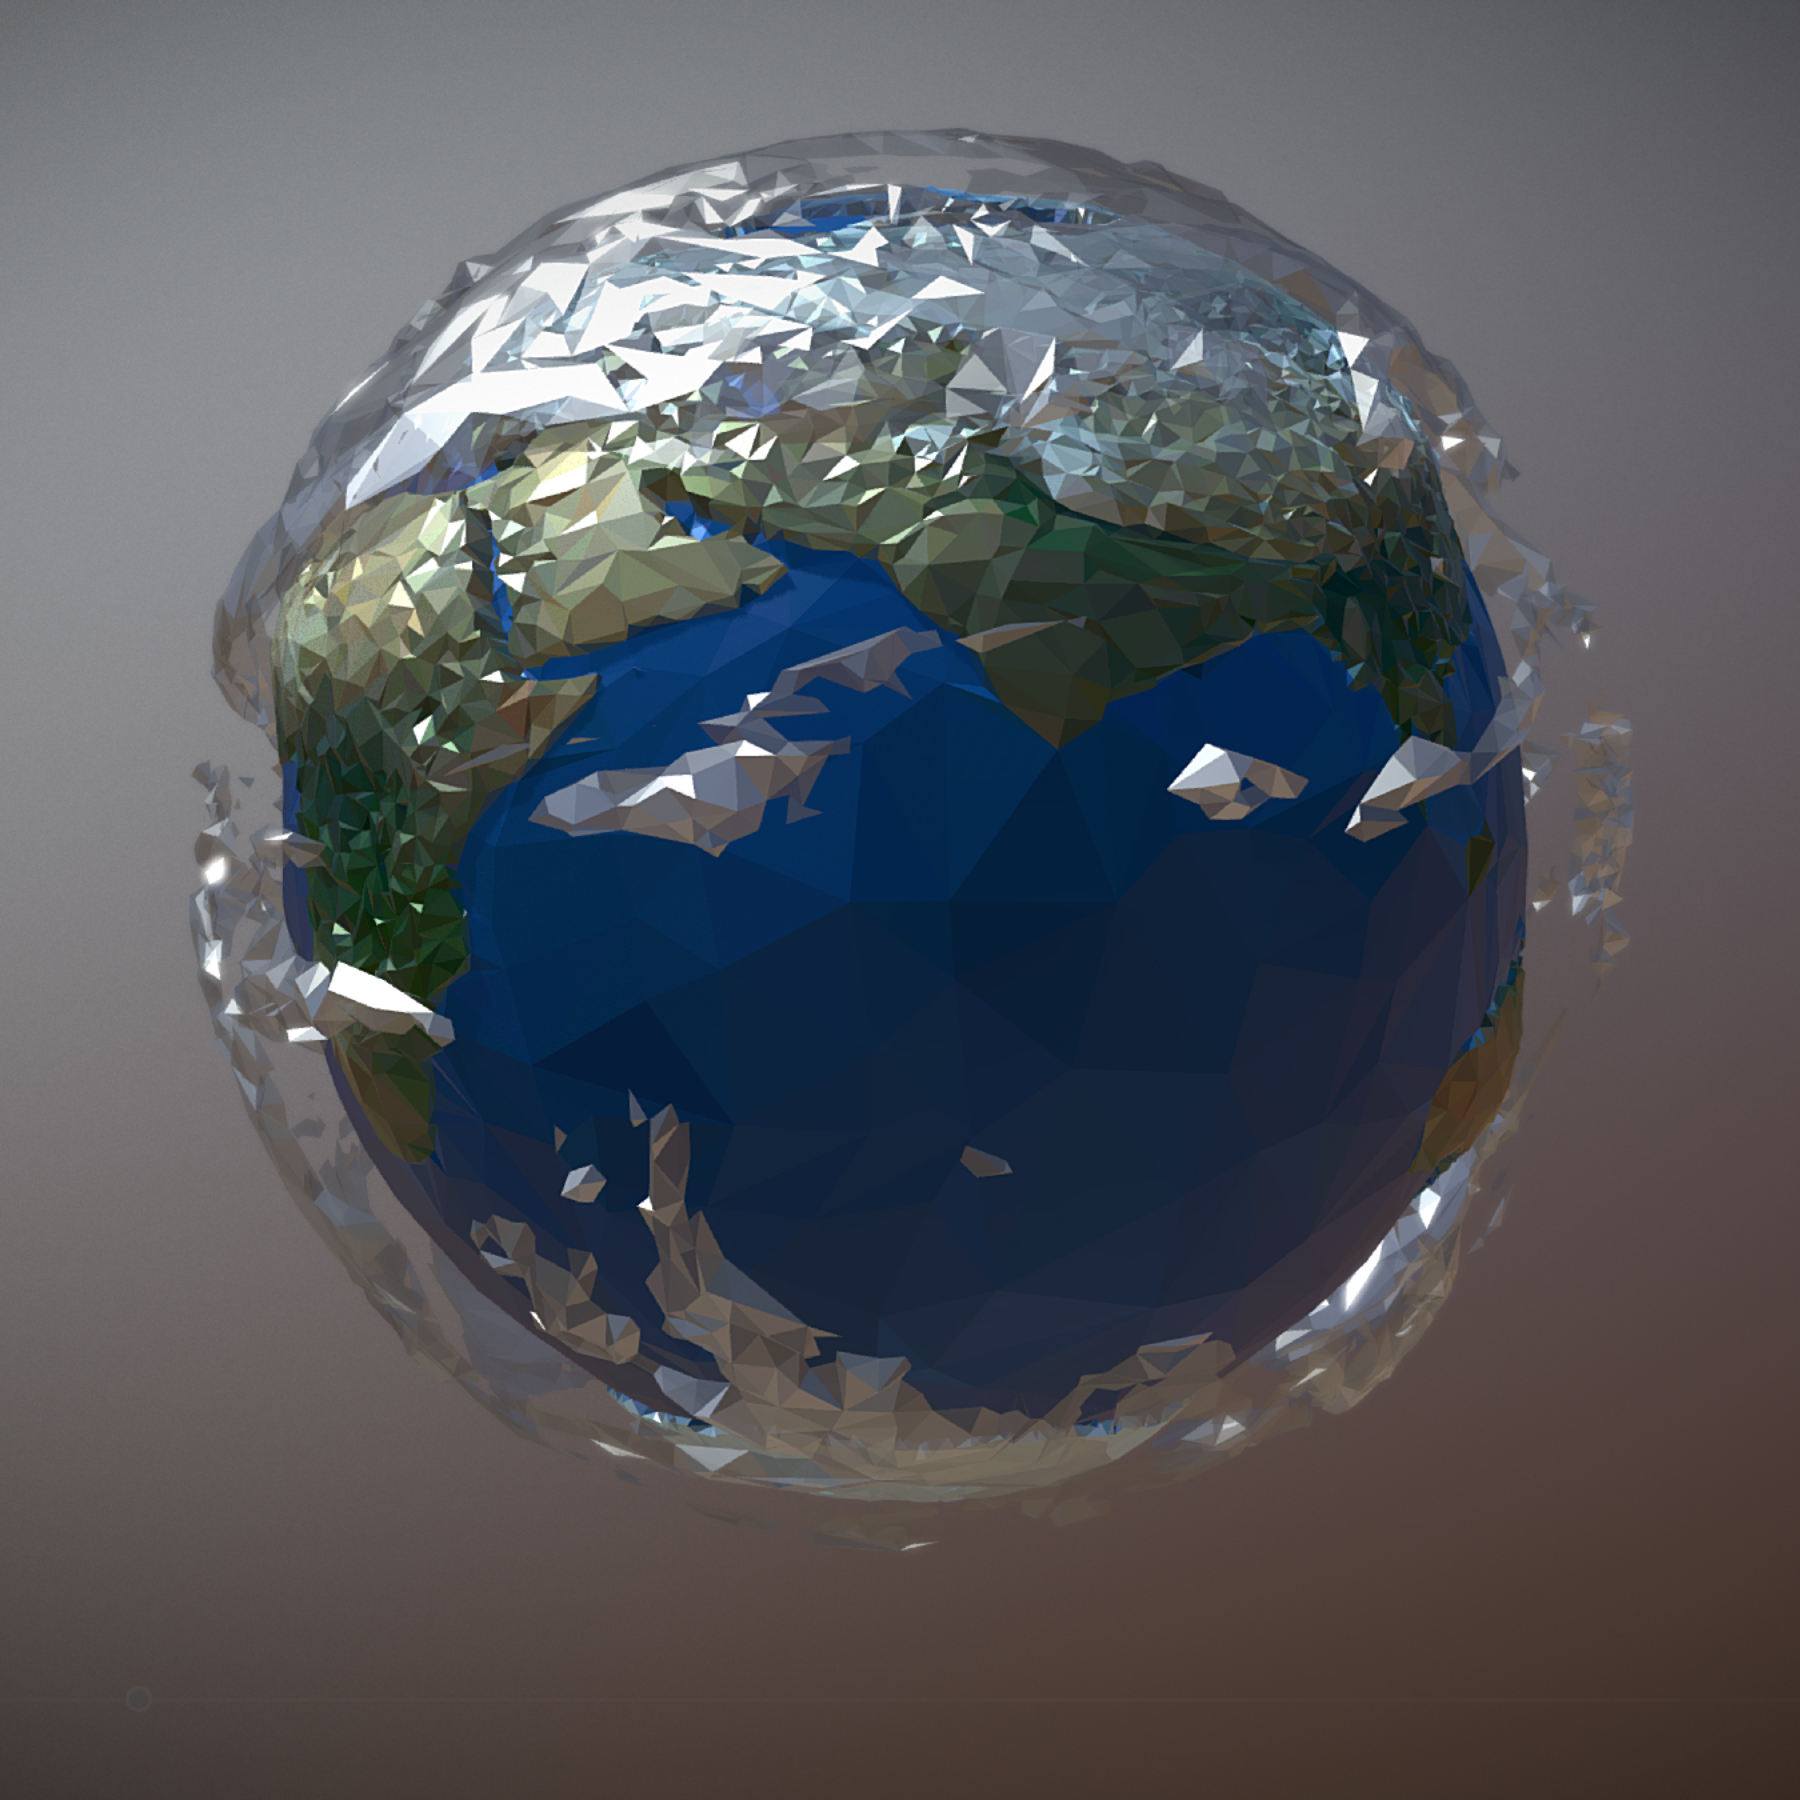 planet e animuar planet 3d model 3ds max fbx ma mbrapa targa icb vda vst pix obj 271053